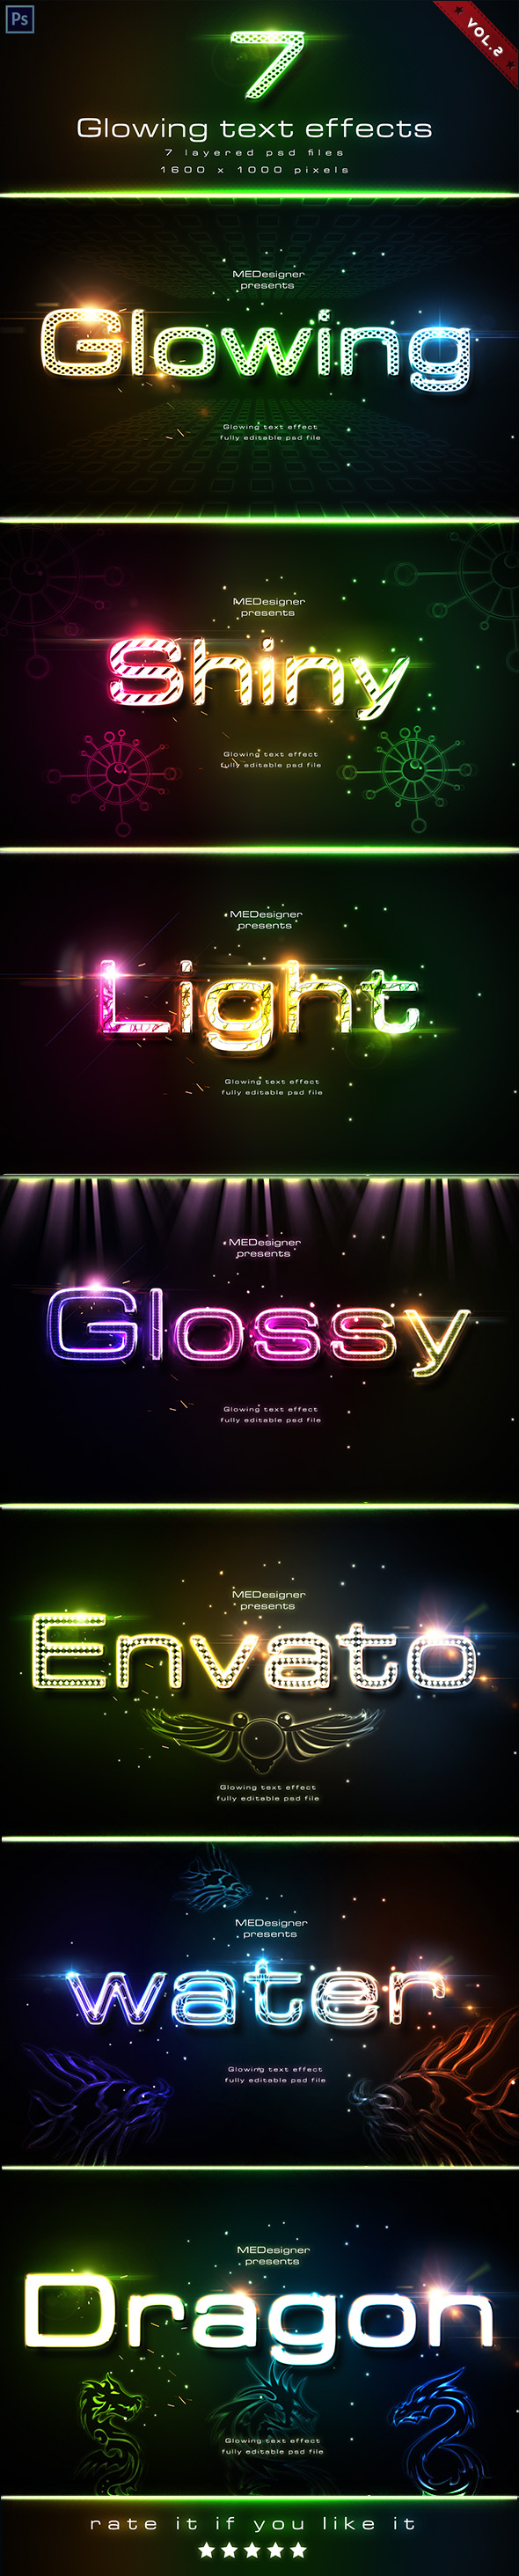 Glowing Text Effects V.2 - Text Effects Actions